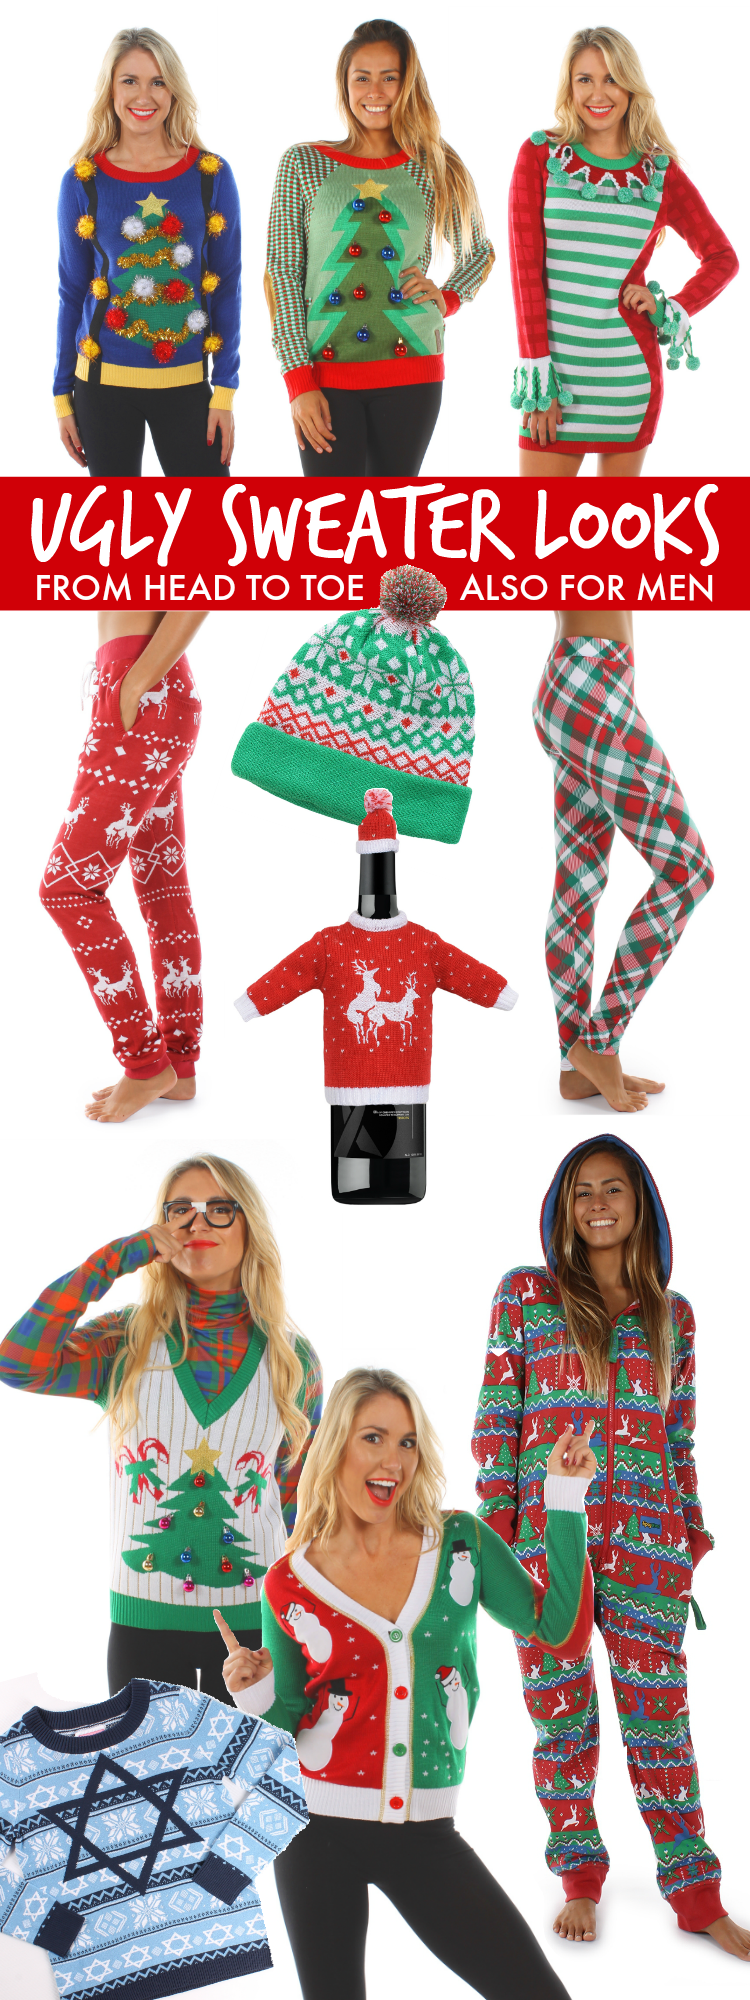 b3fc80ede 50 Ugly Christmas Sweater Party Ideas - Oh My Creative